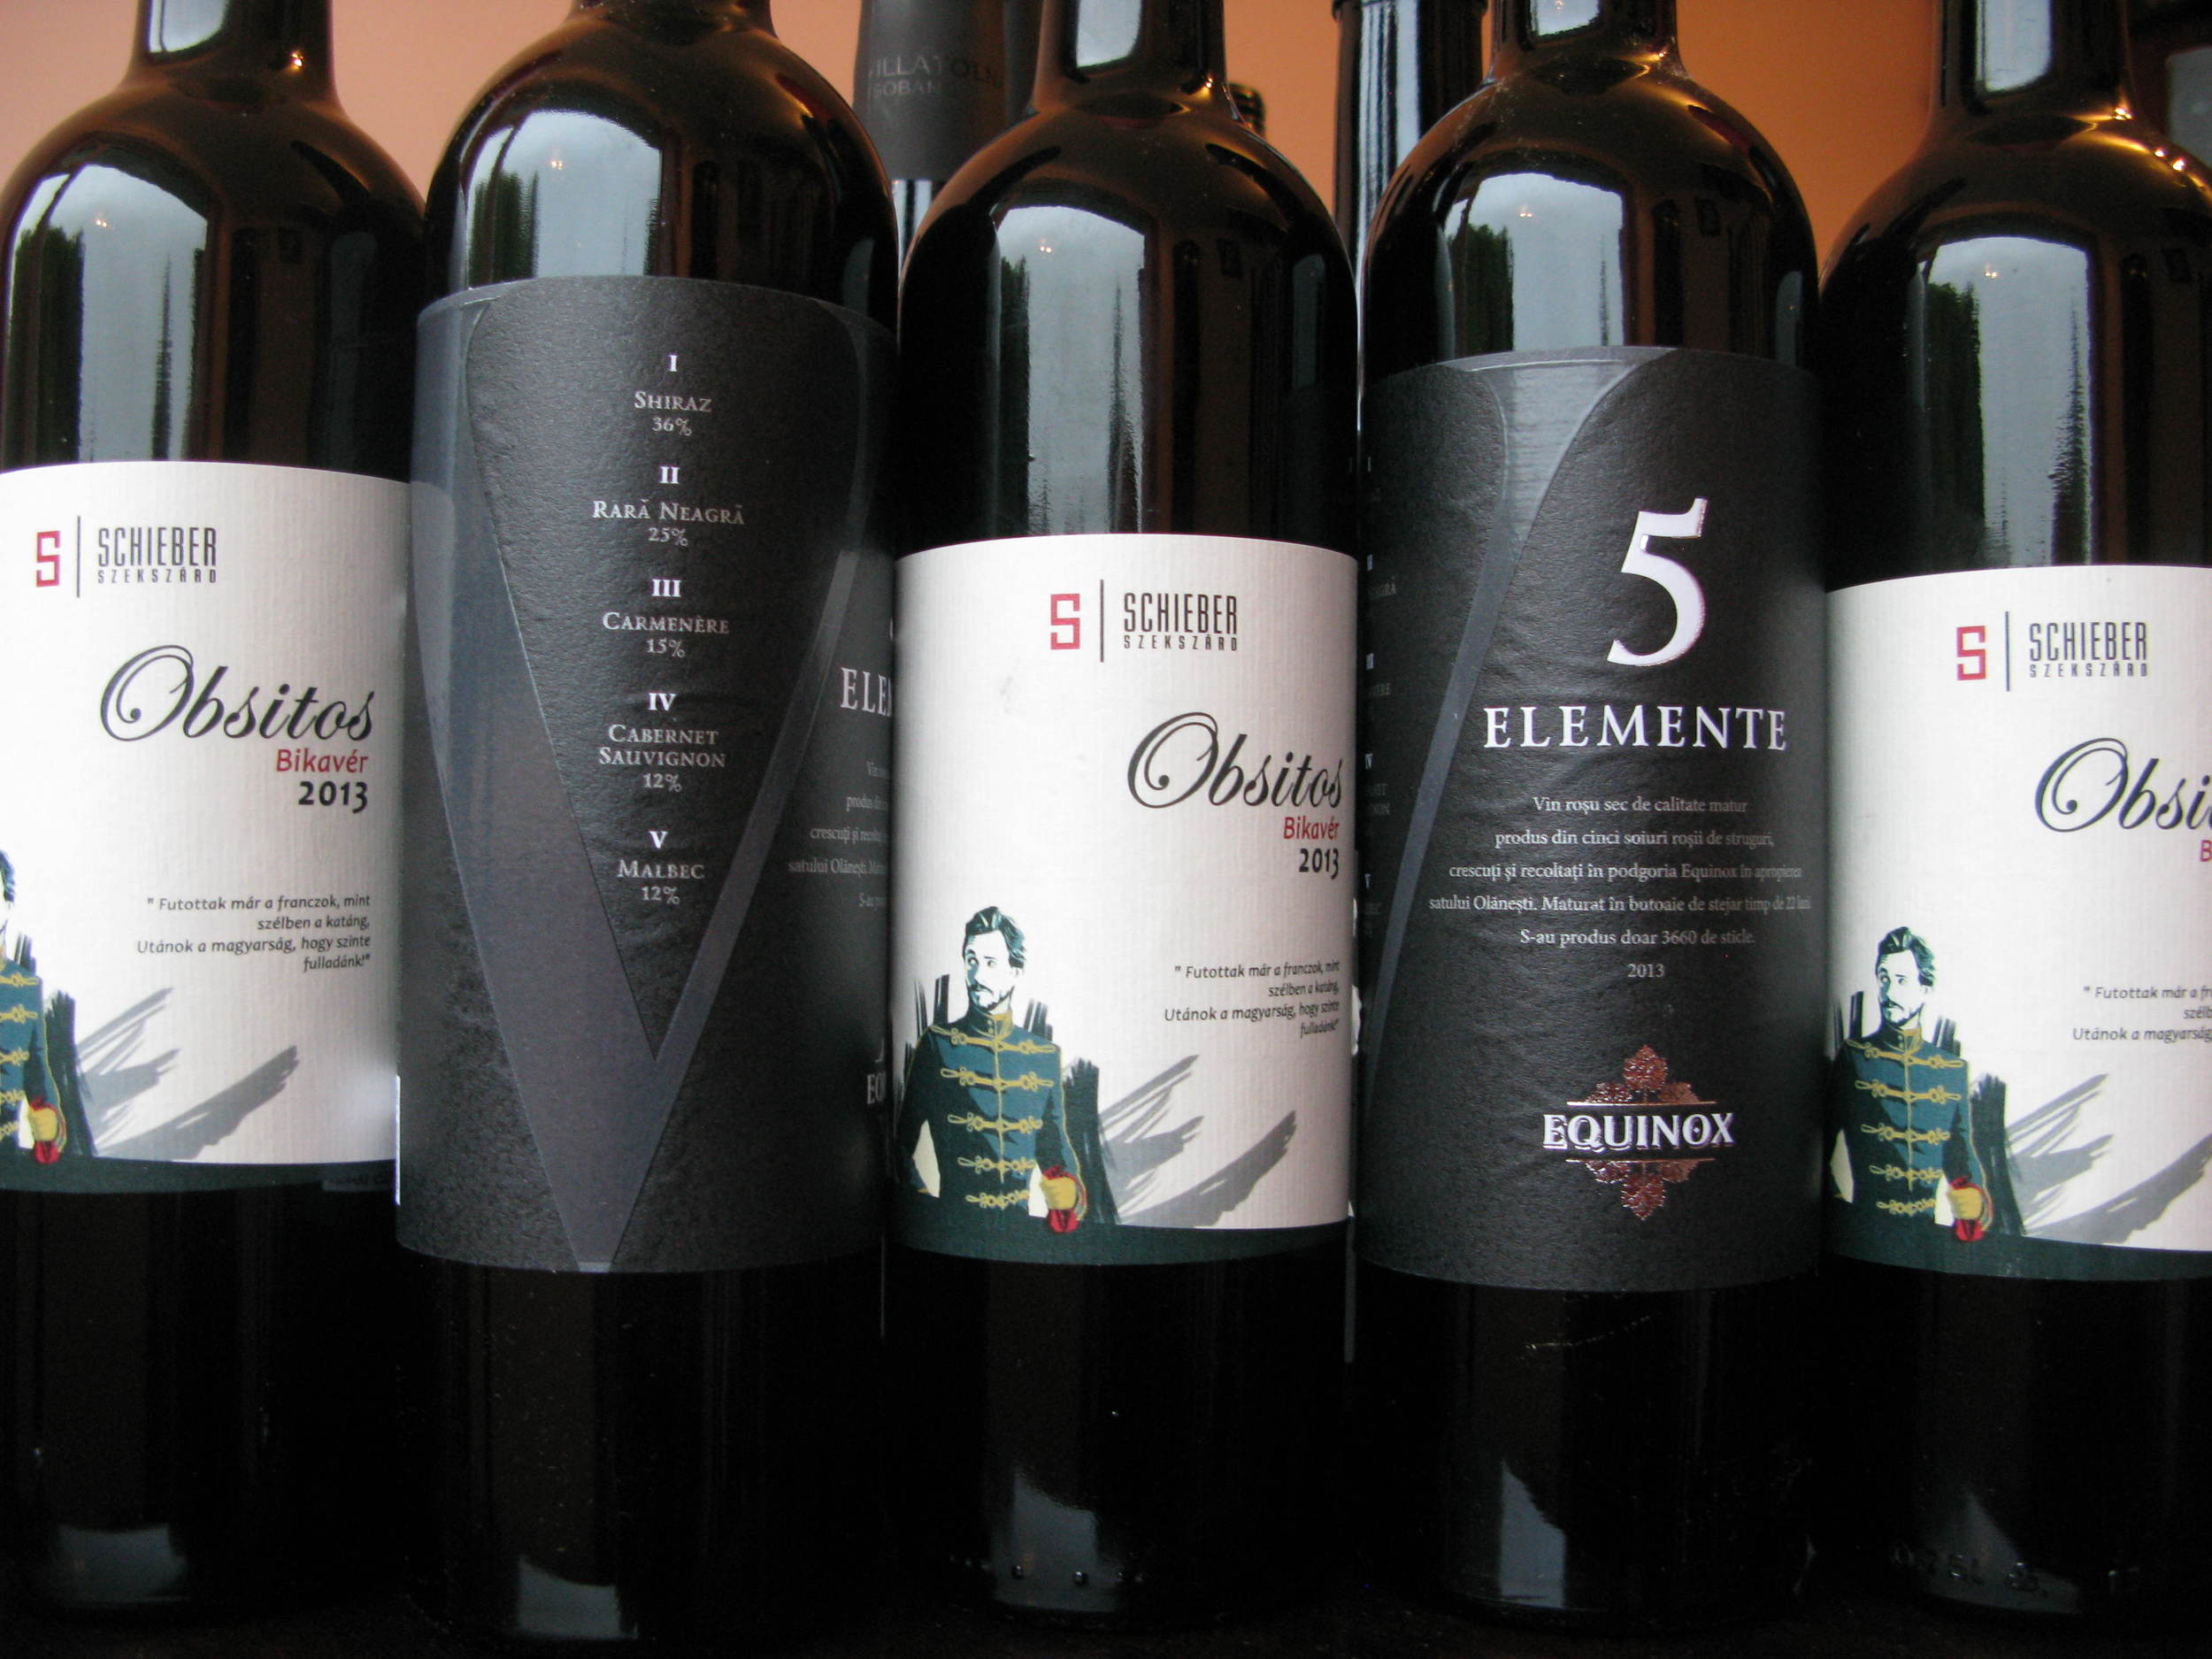 Two interesting red blends: Schieber Obsitos Bikavér 2013 from Hungary and Equinox 5 Elemente 2013 from Moldova